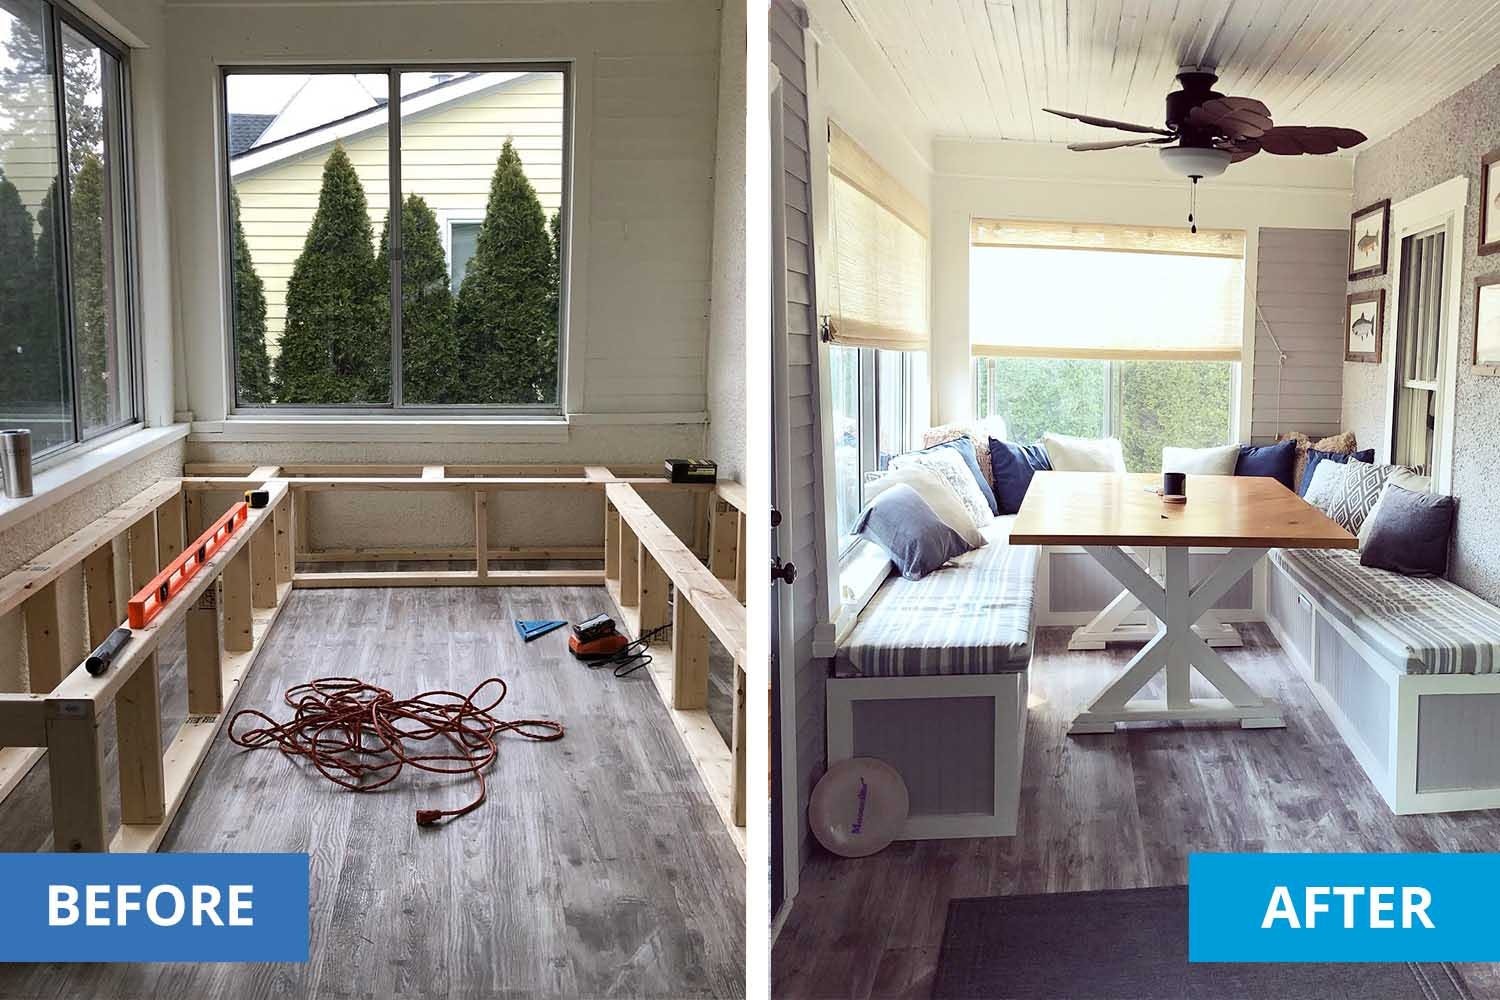 Left shows the construction process for a custom bench and breakfast nook. Right shows the finished nook.